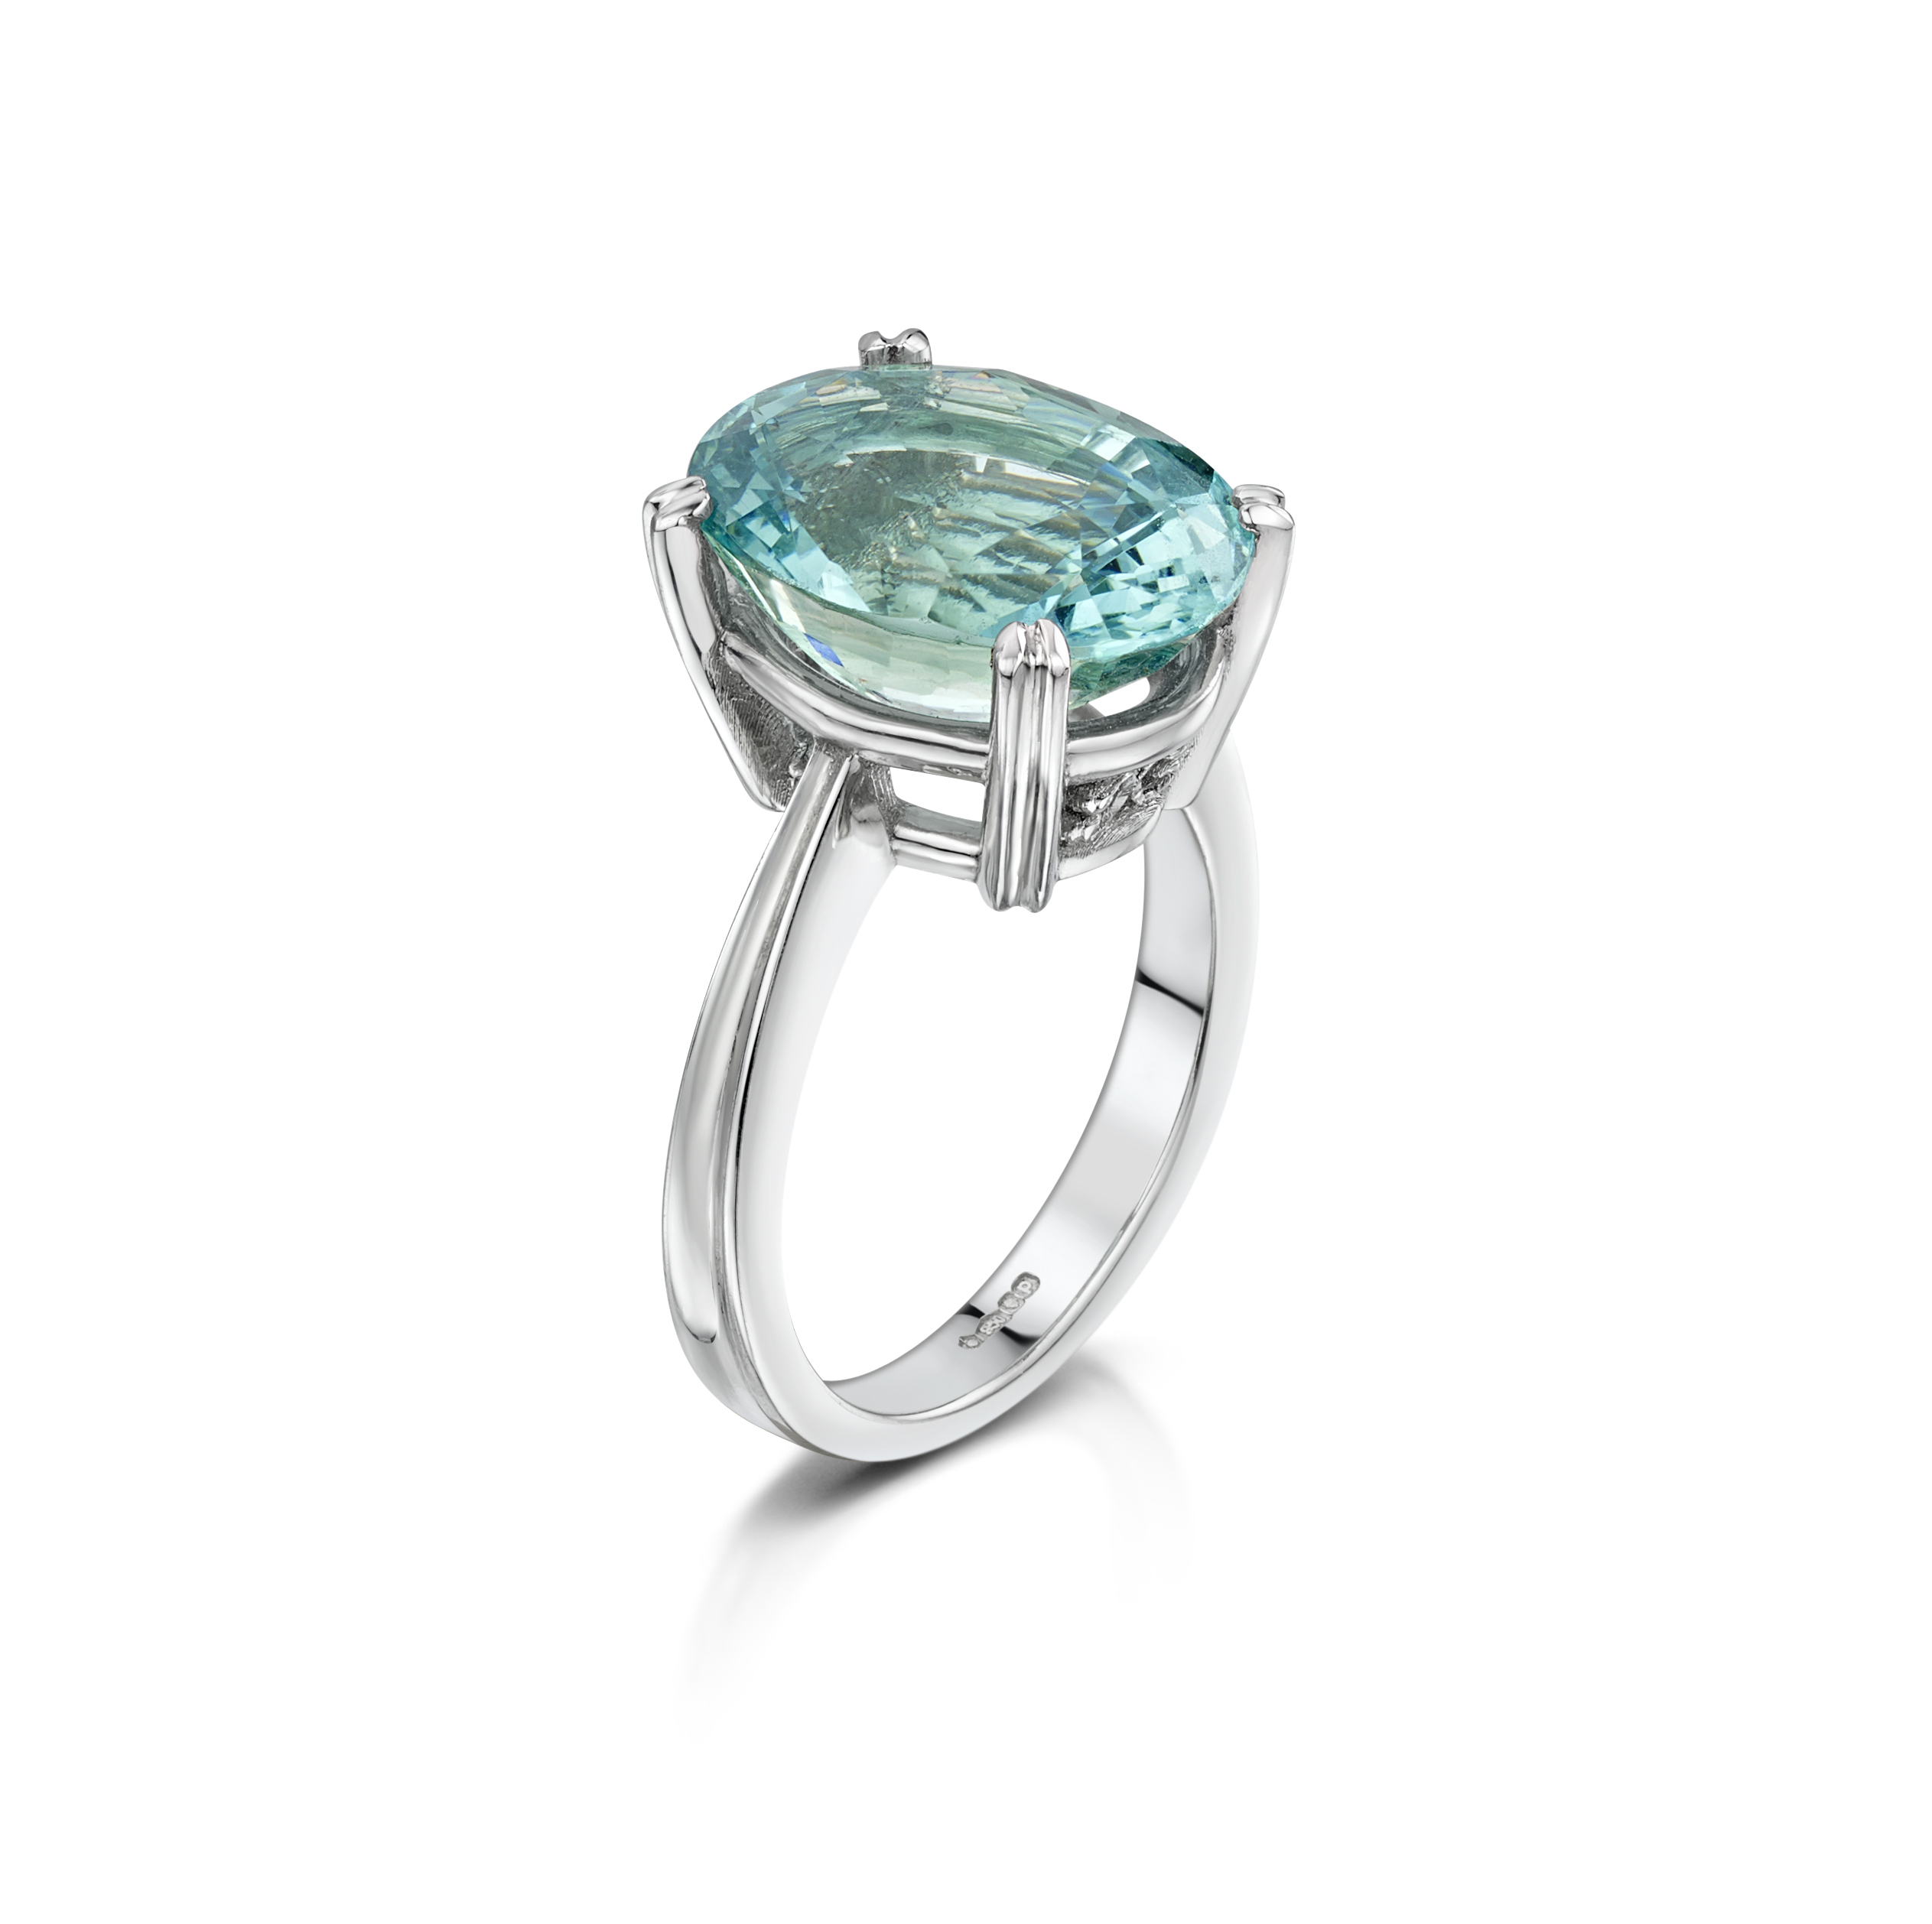 AQUAMARINE & PLATINUM RING